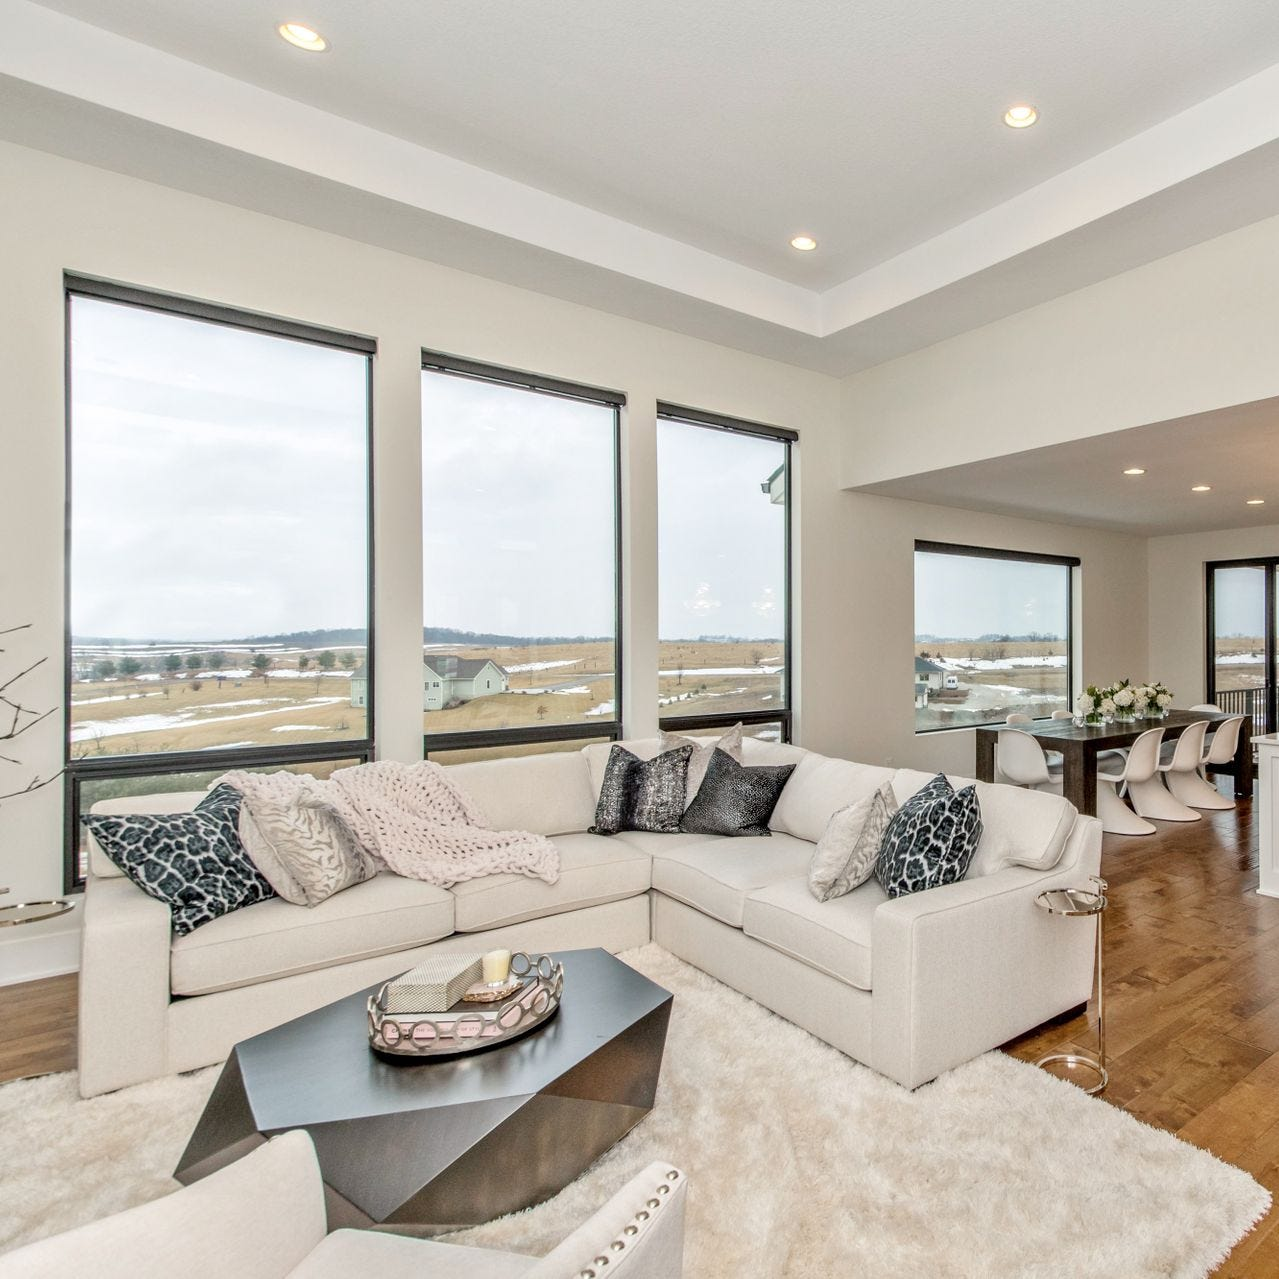 Mansion Monday: Stunning finishes and features throughout this executive home